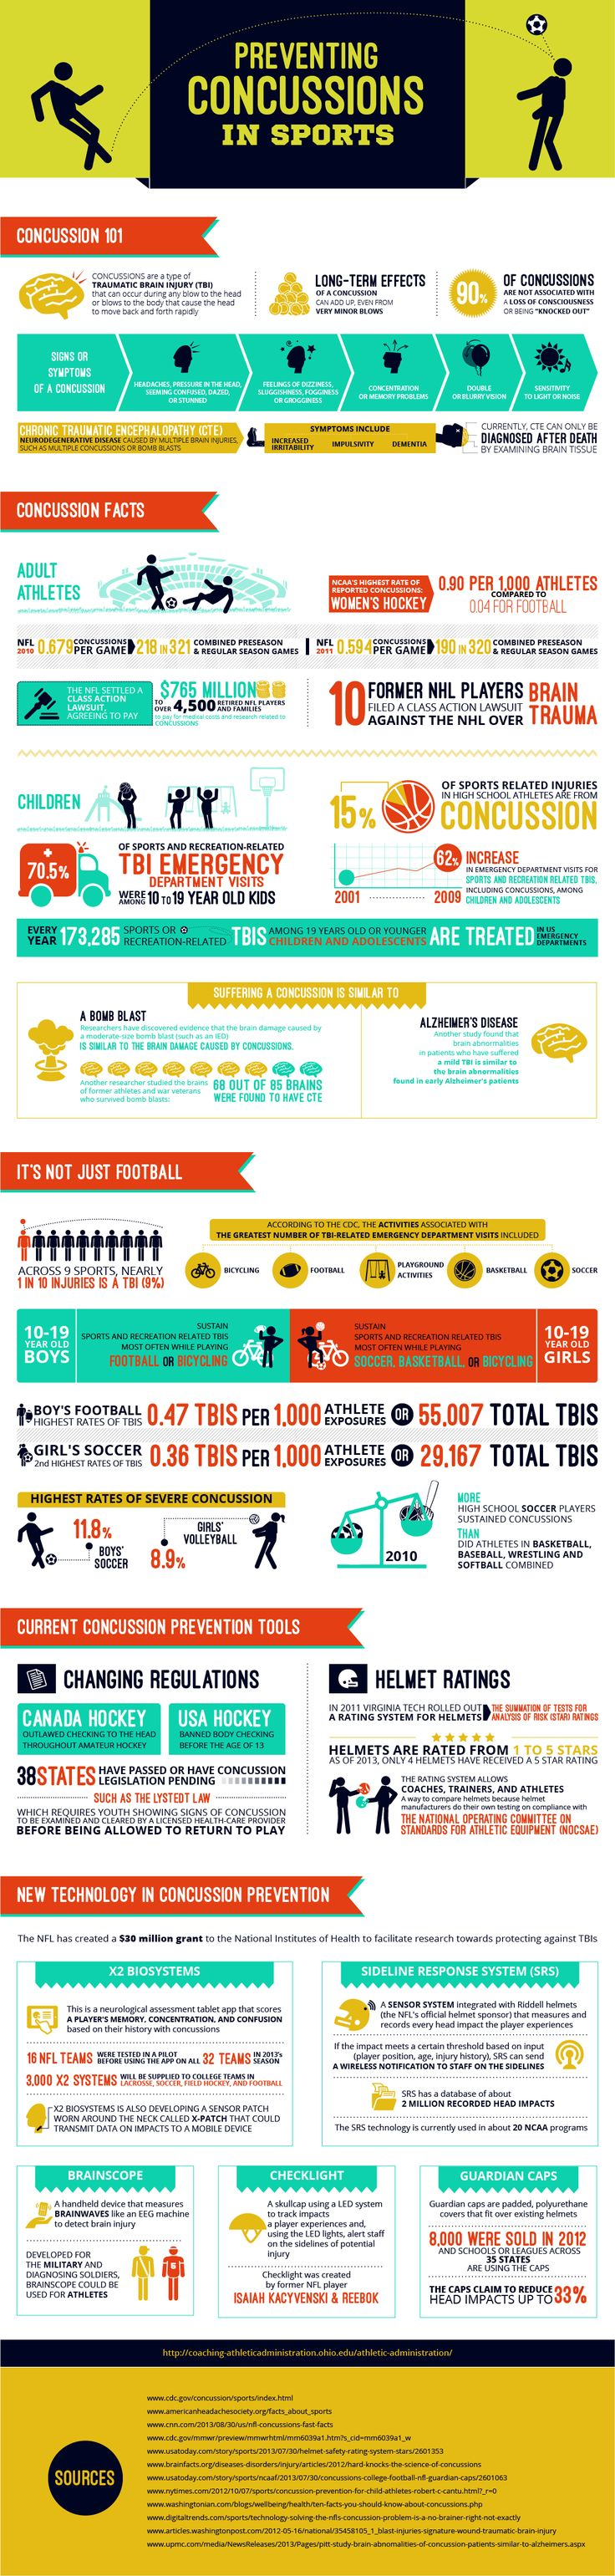 In the field of athletics, a common dialogue of coaches, administrators, athletes, and the media surrounds player safety and concussions. Although the majority of concussions are not associated with a loss of consciousness, the long term affects of these sometimes minor traumatic brain injuries can be devastating. Concussions can occur in many sports, with the NCAA rating Women's Hockey as the collegiate sport with the highest rate of reported concussions.